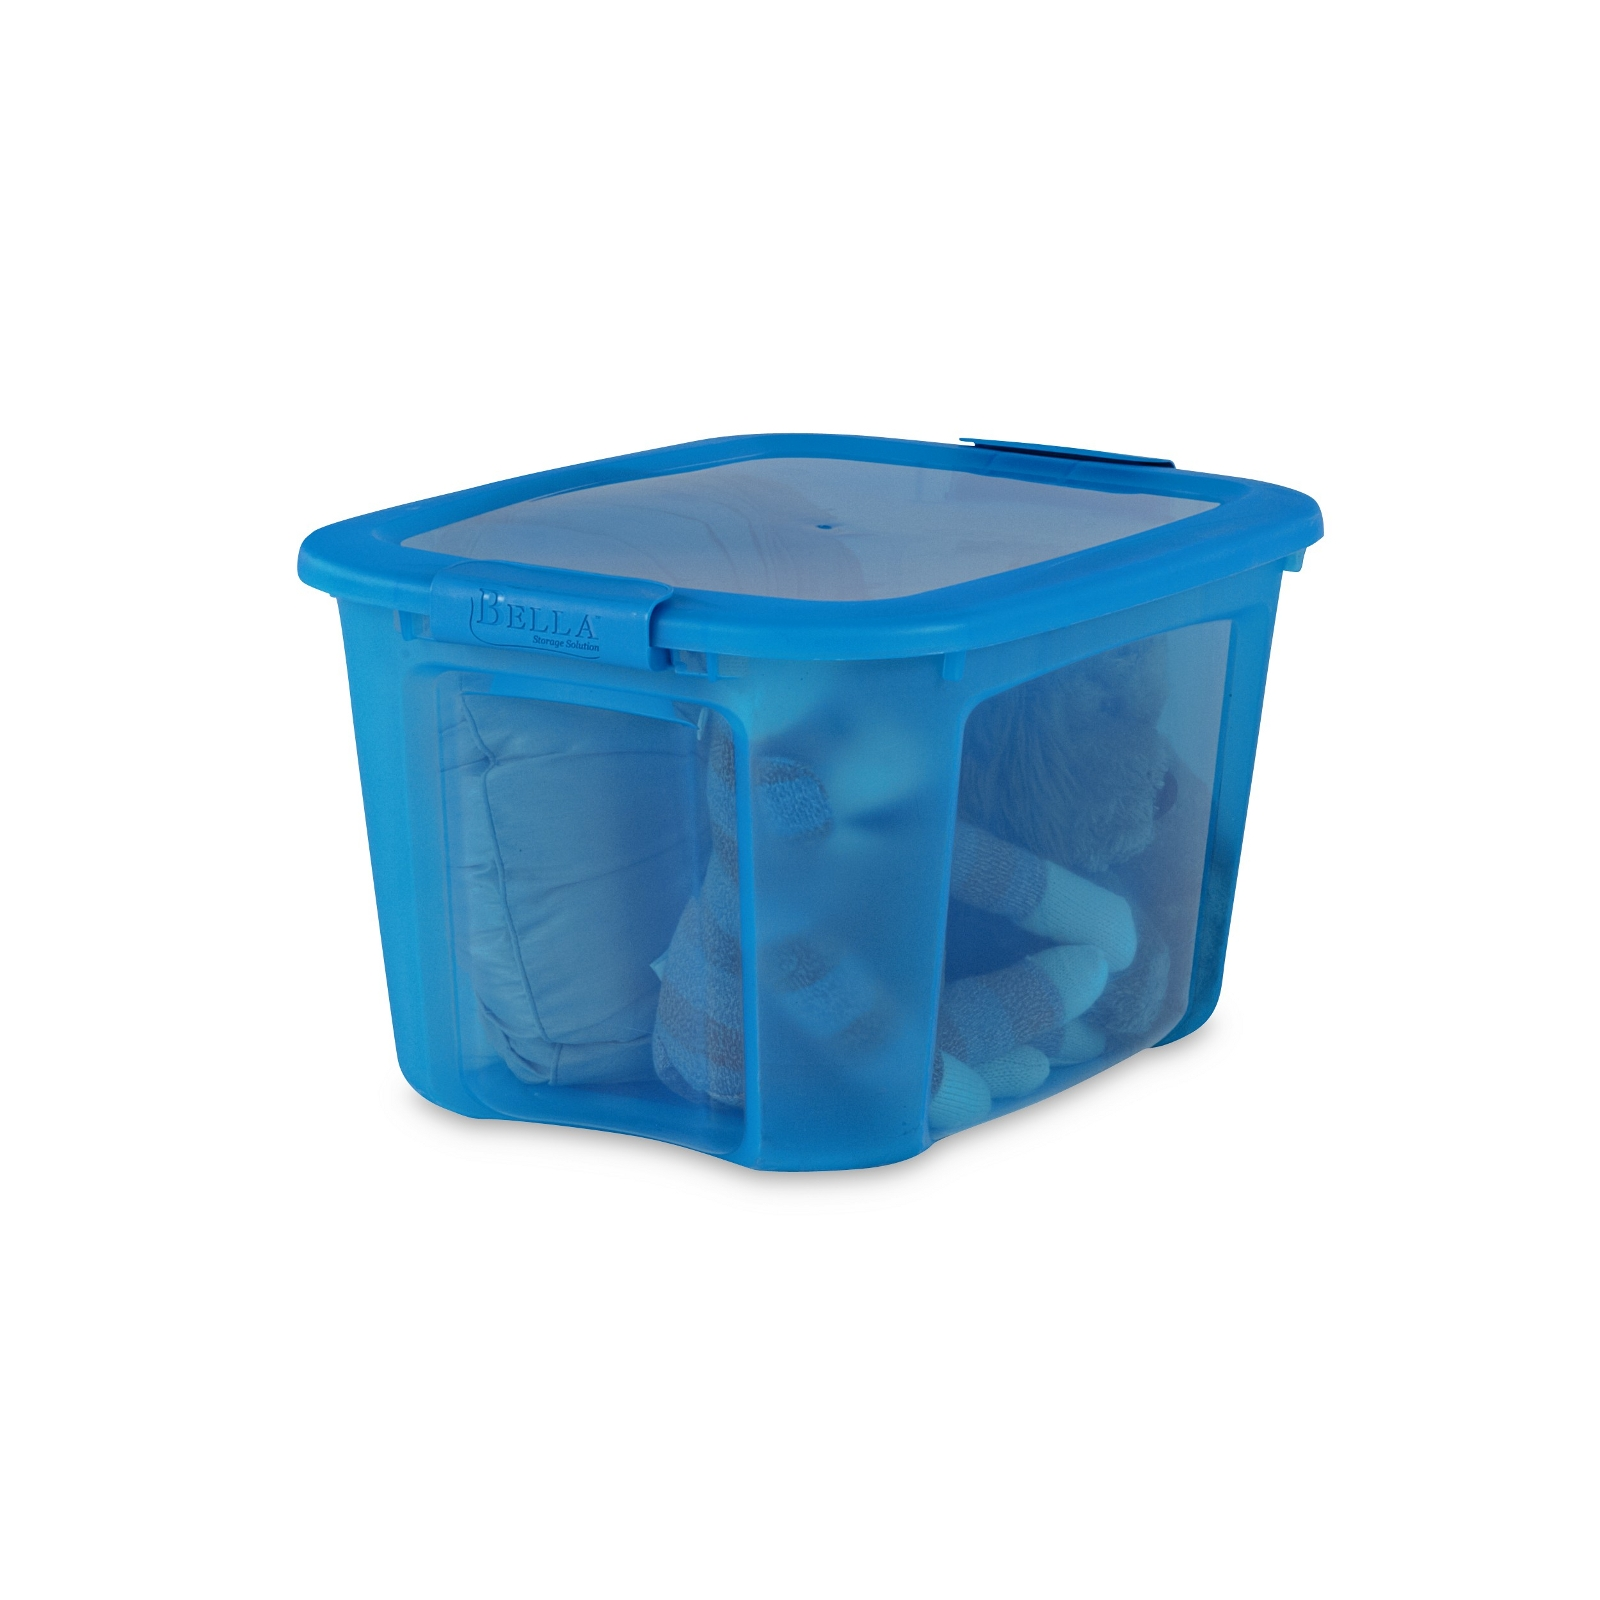 40-Quart Blue Locking Lid Storage Bin